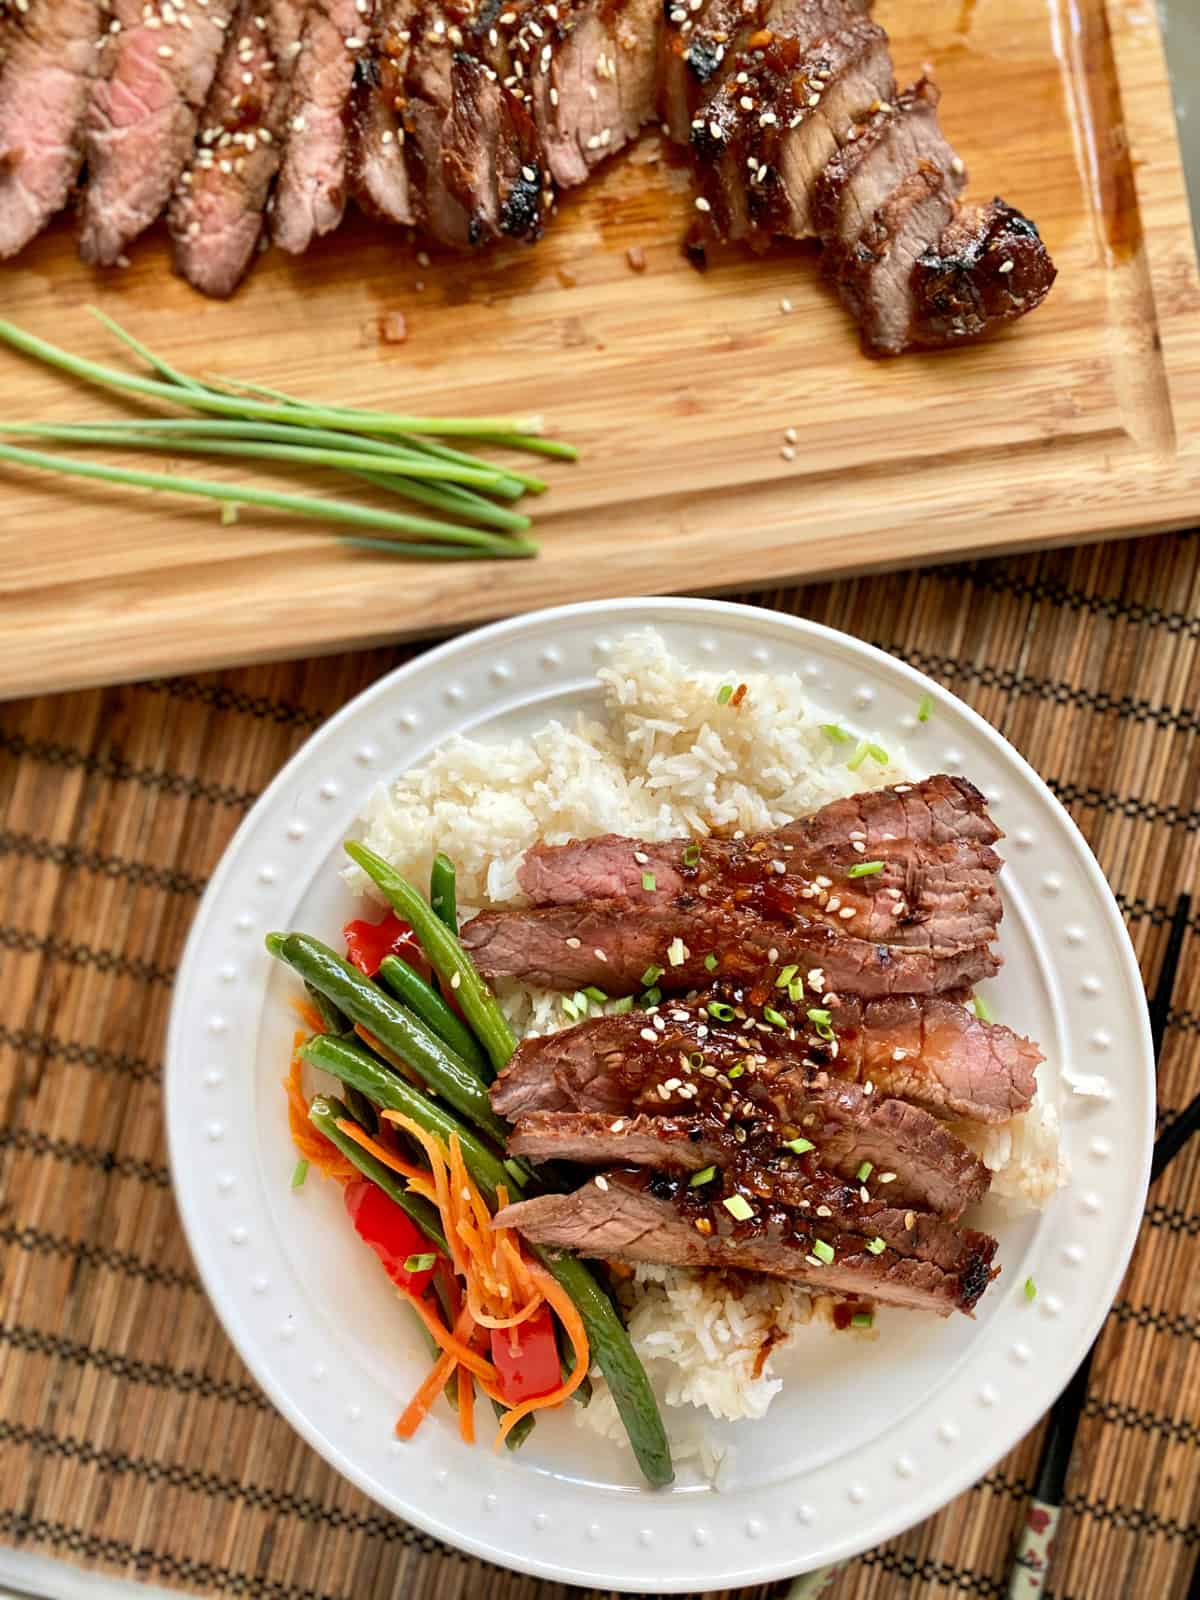 Top view of a white plate filled with slices of steak, rice, and green beans with a wood cutting board with more steak.